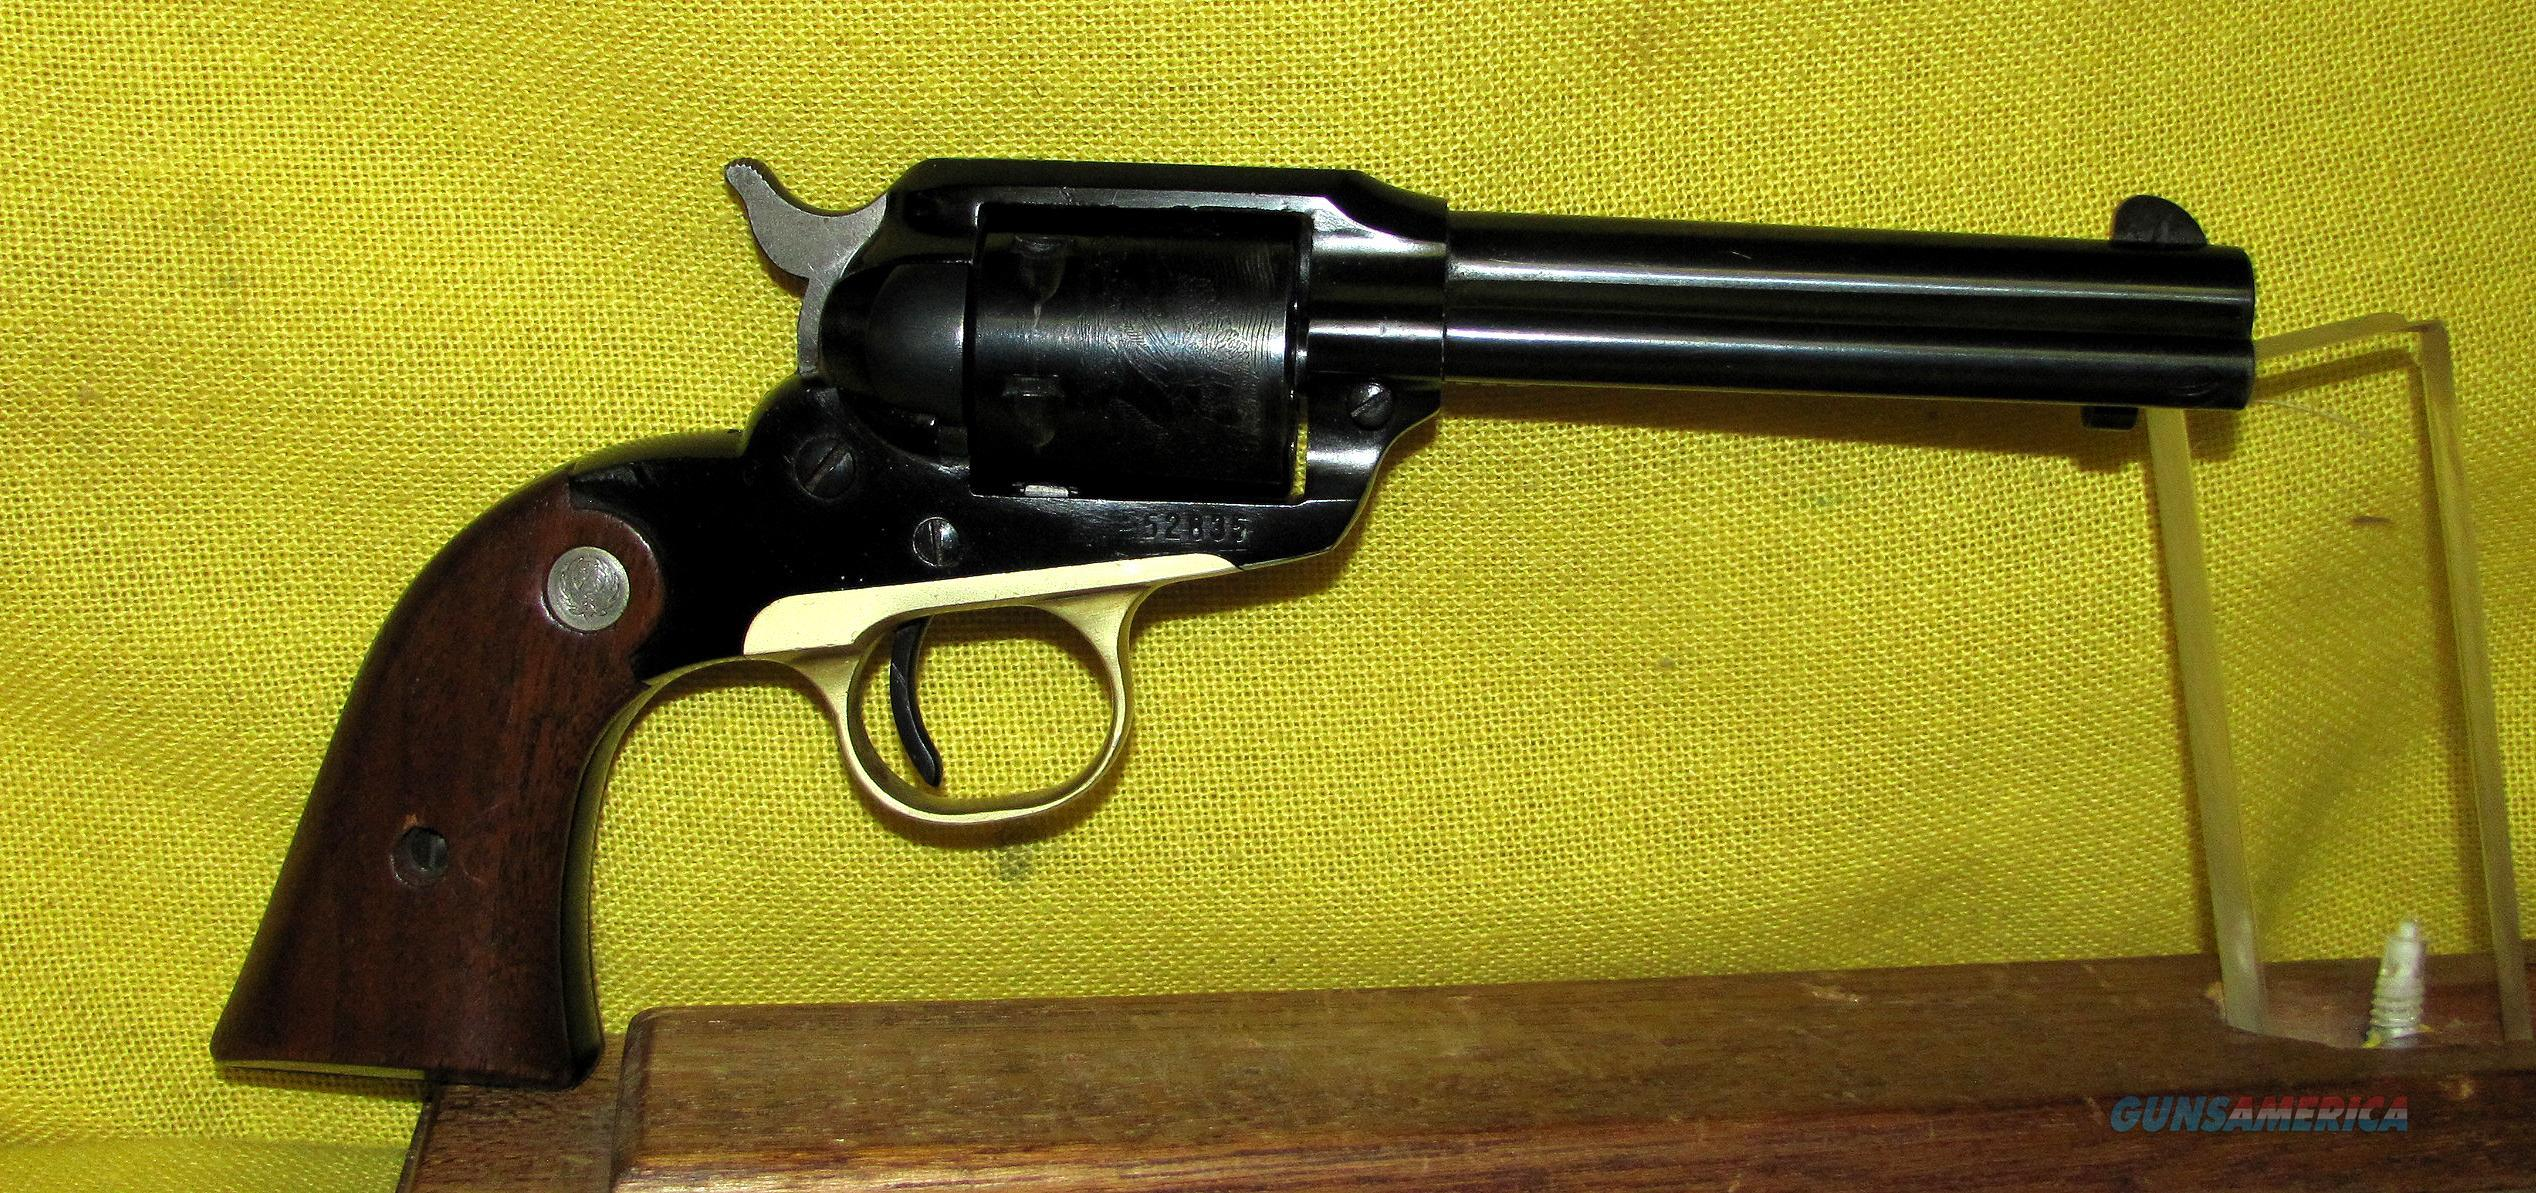 RUGER (PRE-WARNING) BEARCAT  Guns > Pistols > Ruger Single Action Revolvers > Bearcat